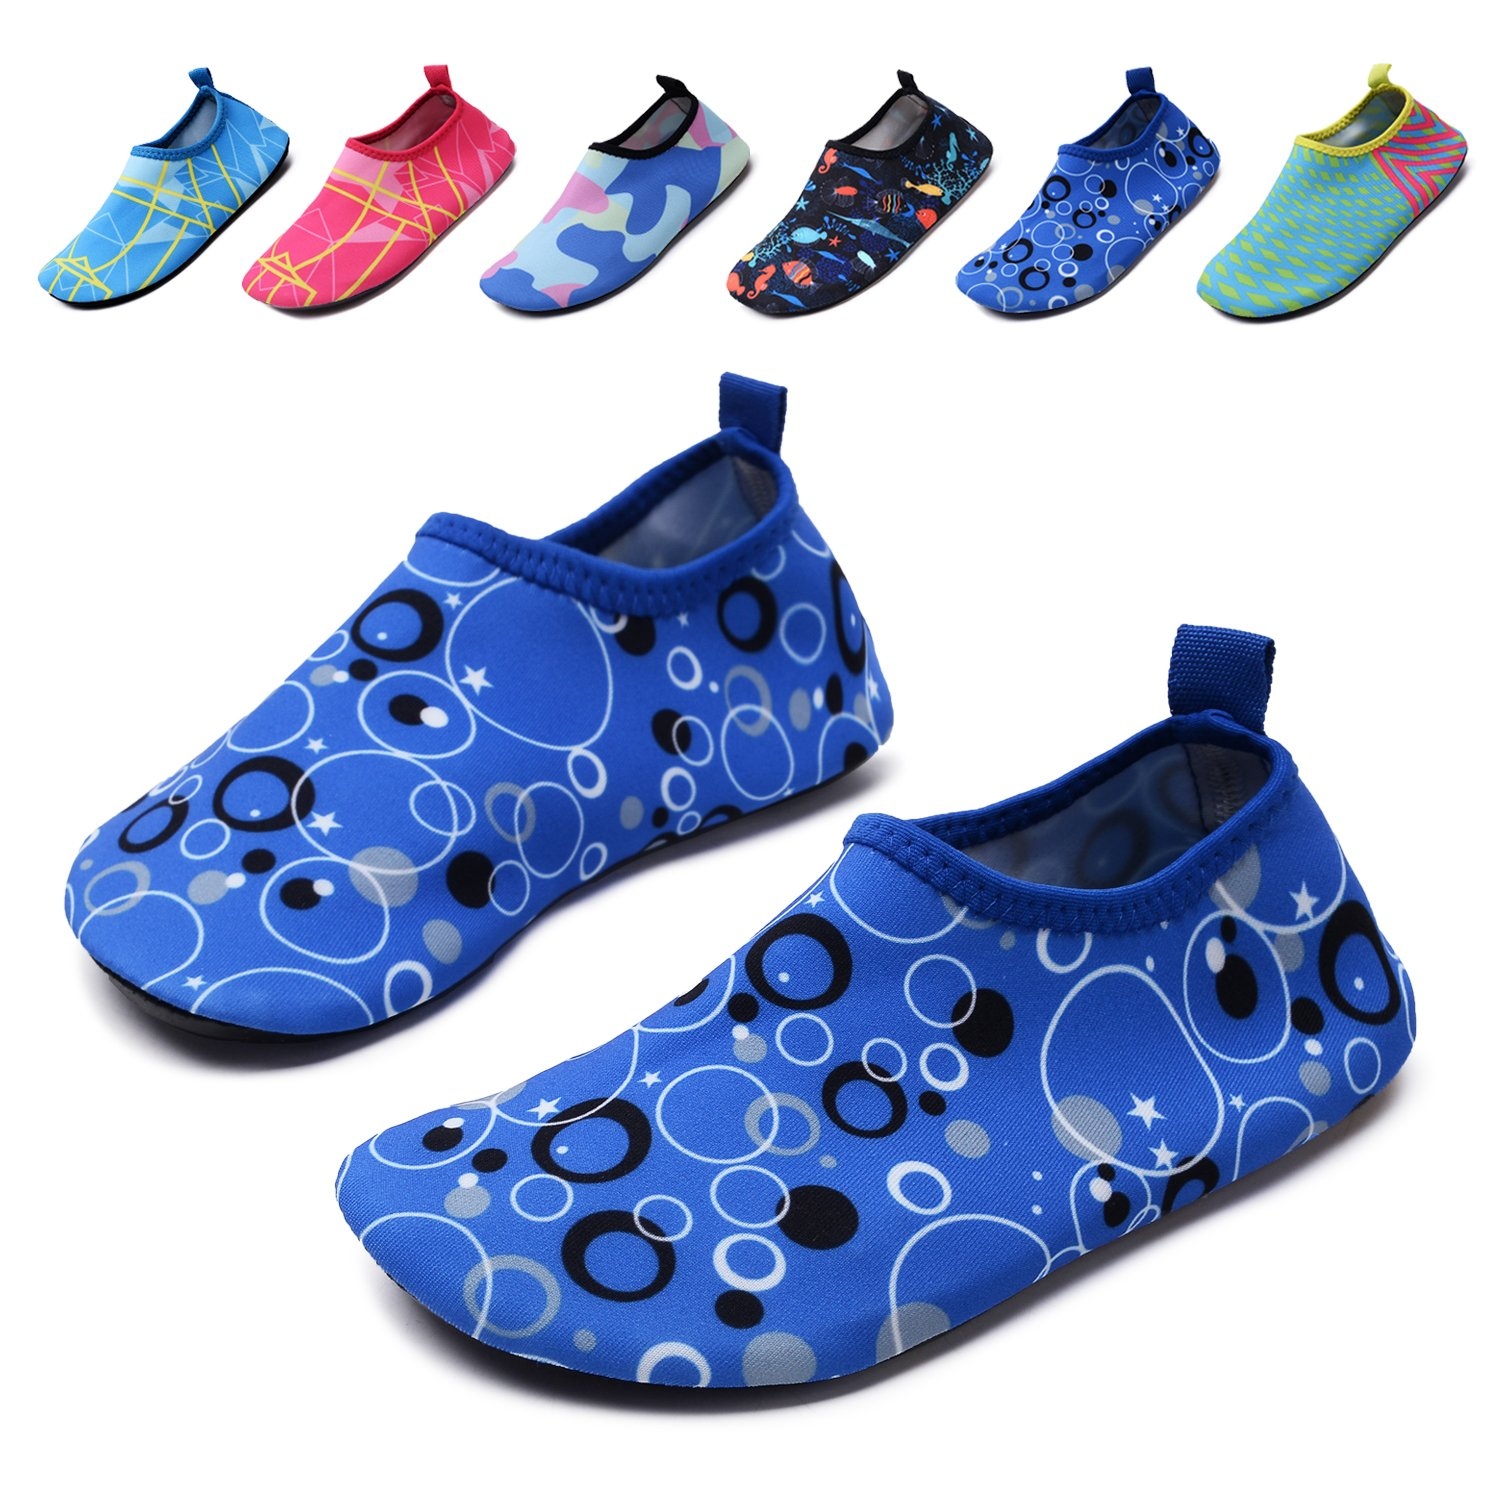 lewhosy Kids Boys and Girls Swim Water Shoes Quick Drying Barefoot Aqua Socks Shoes for Beach Pool Surfing Yoga(34/Blue)